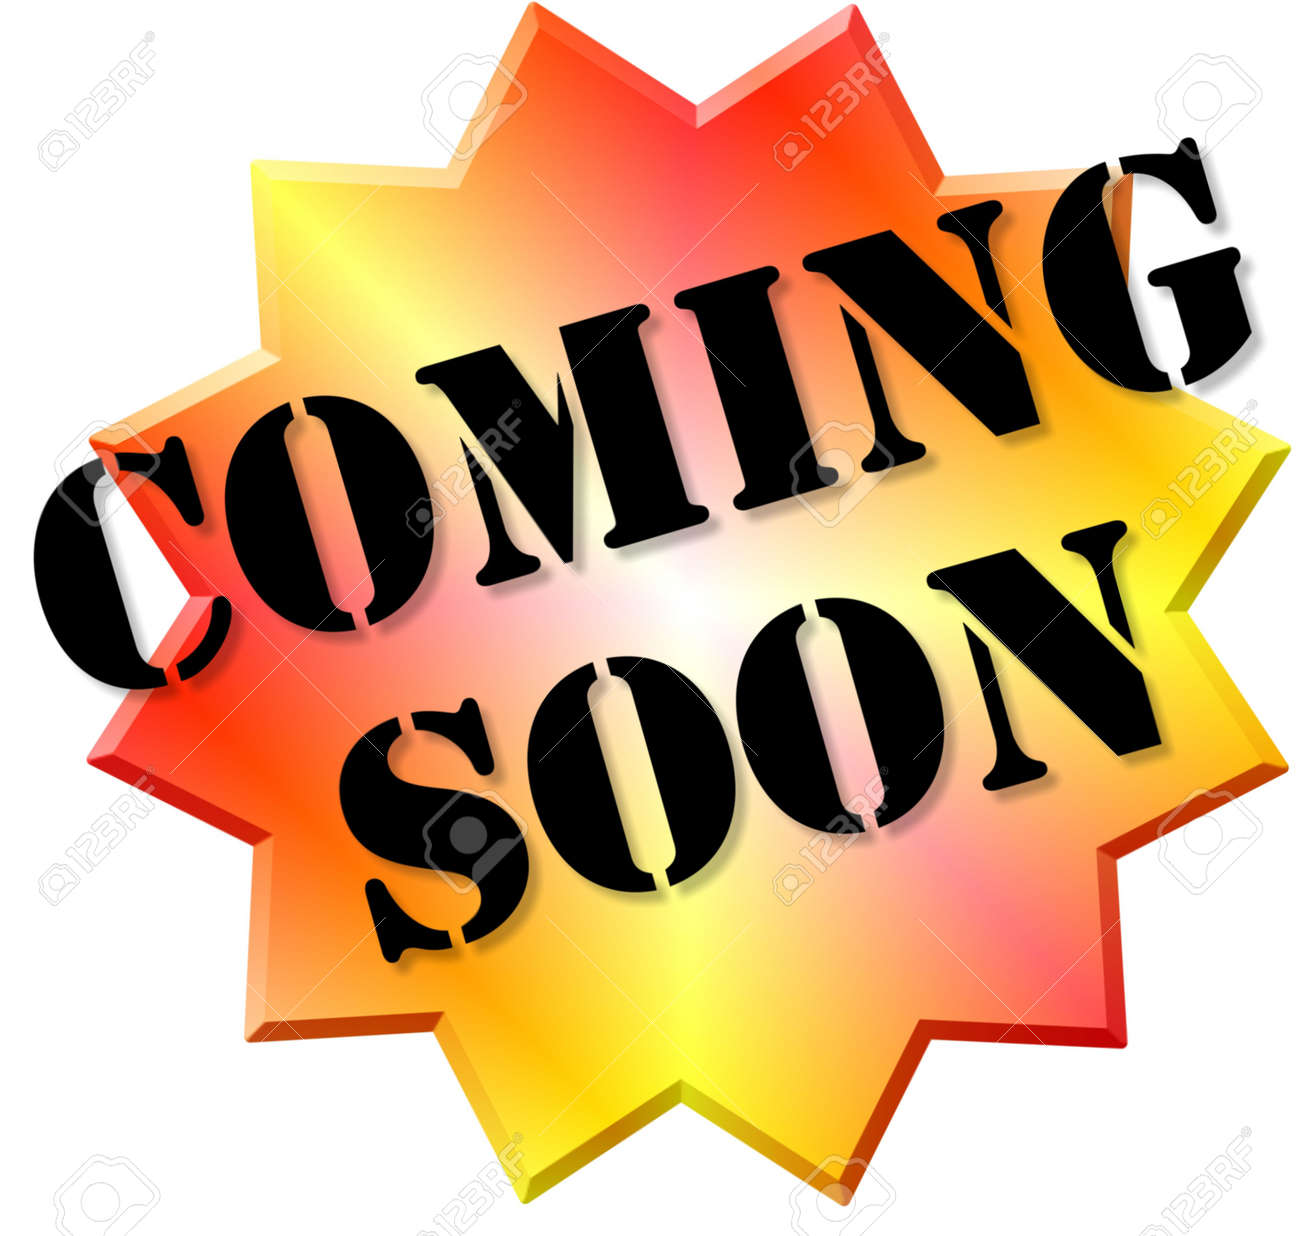 Coming Soon sticker. Stock Photo - 5586108